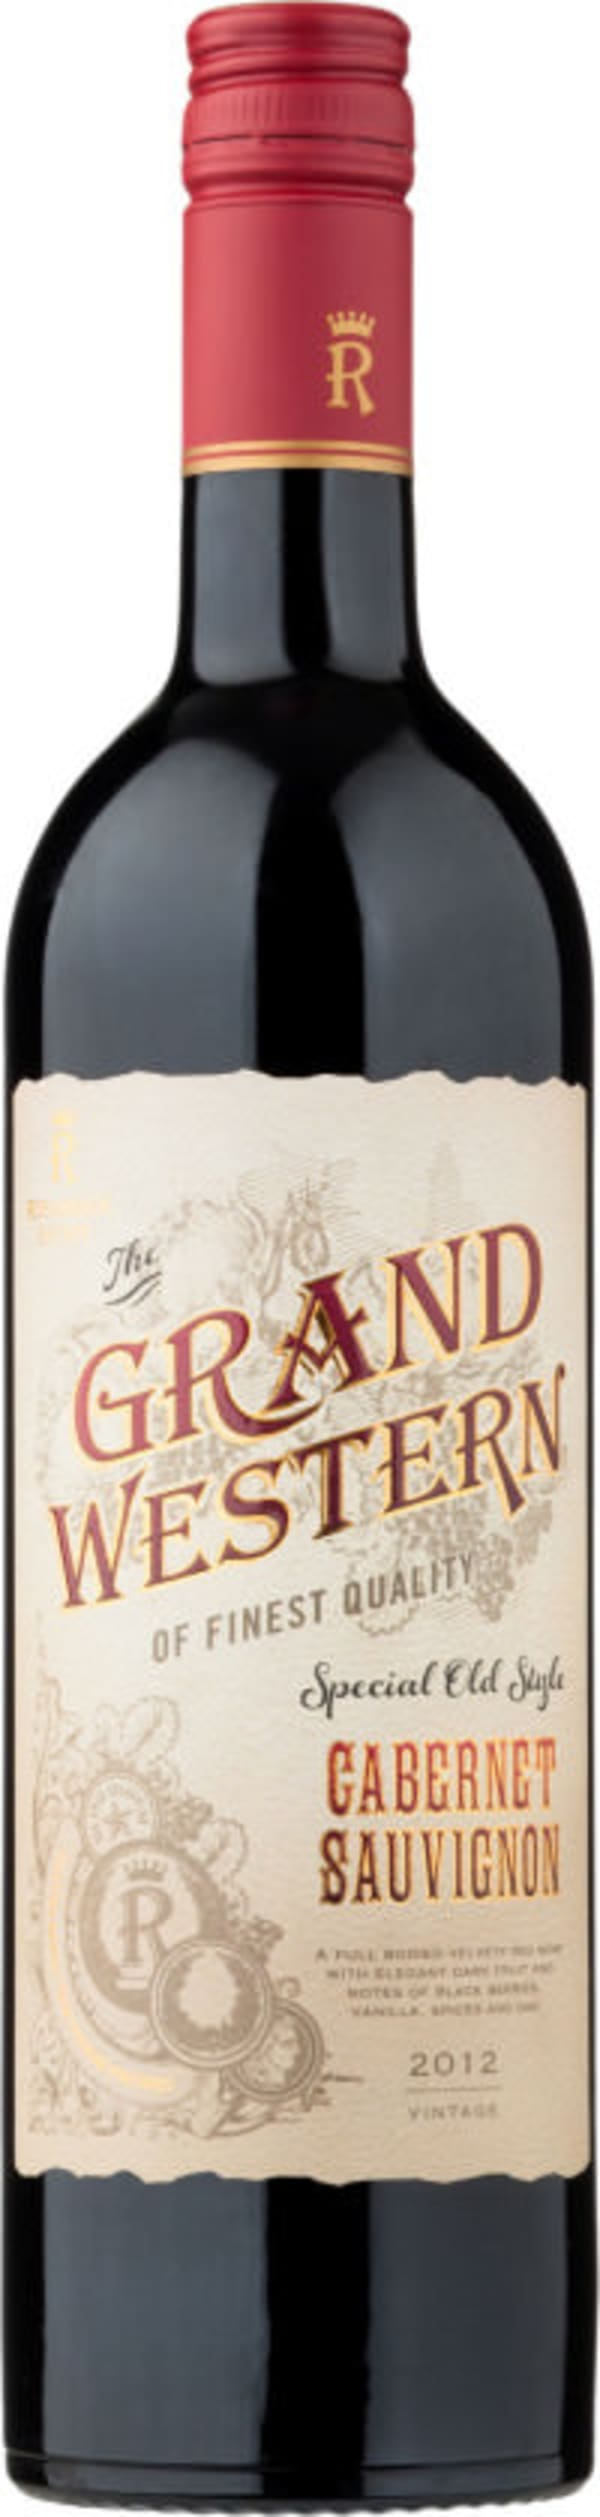 The Grand Western Cabernet Sauvignon 2014